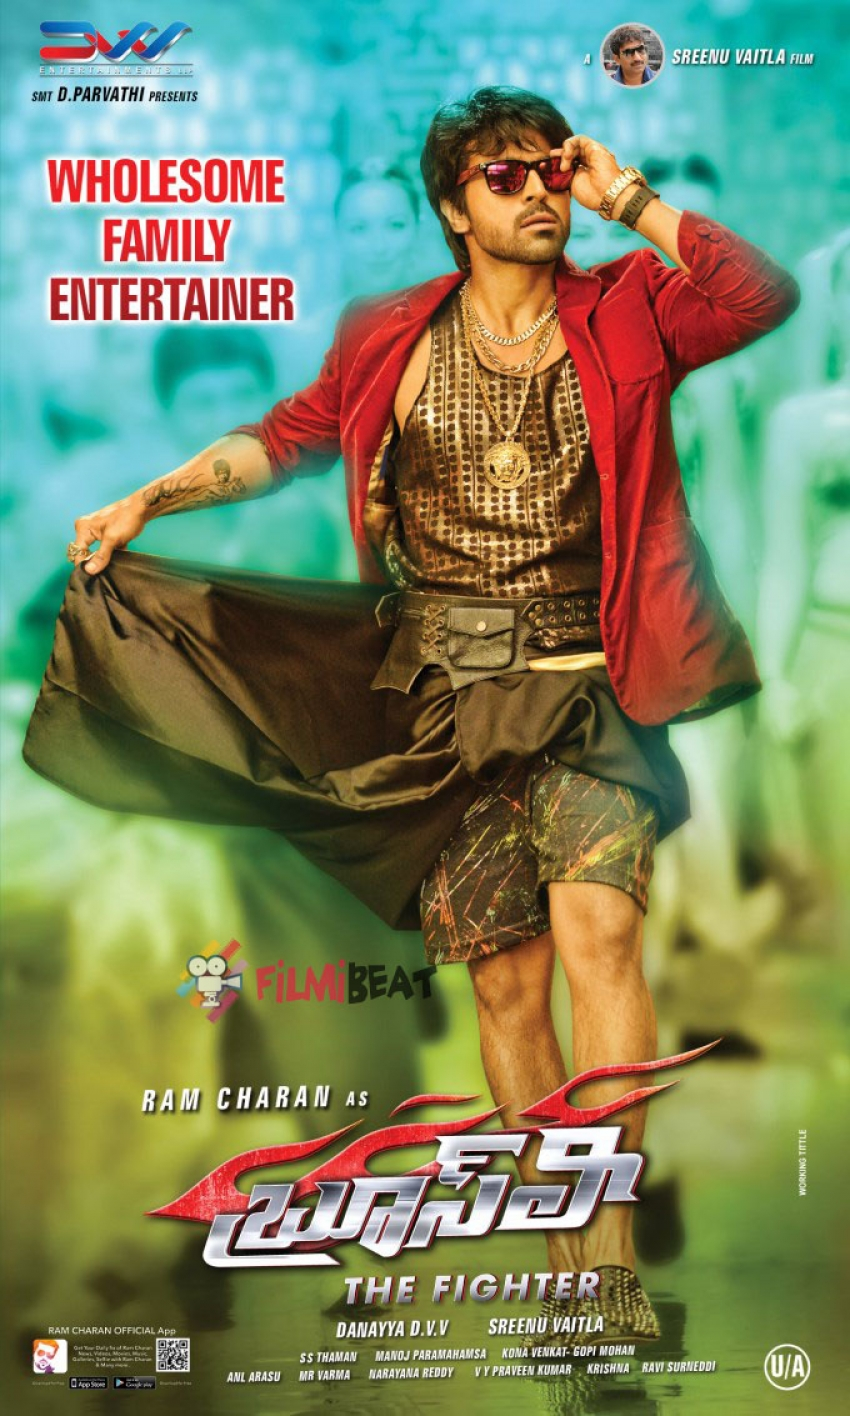 Bruce Lee Photos Hd Images Pictures Stills First Look Posters Of